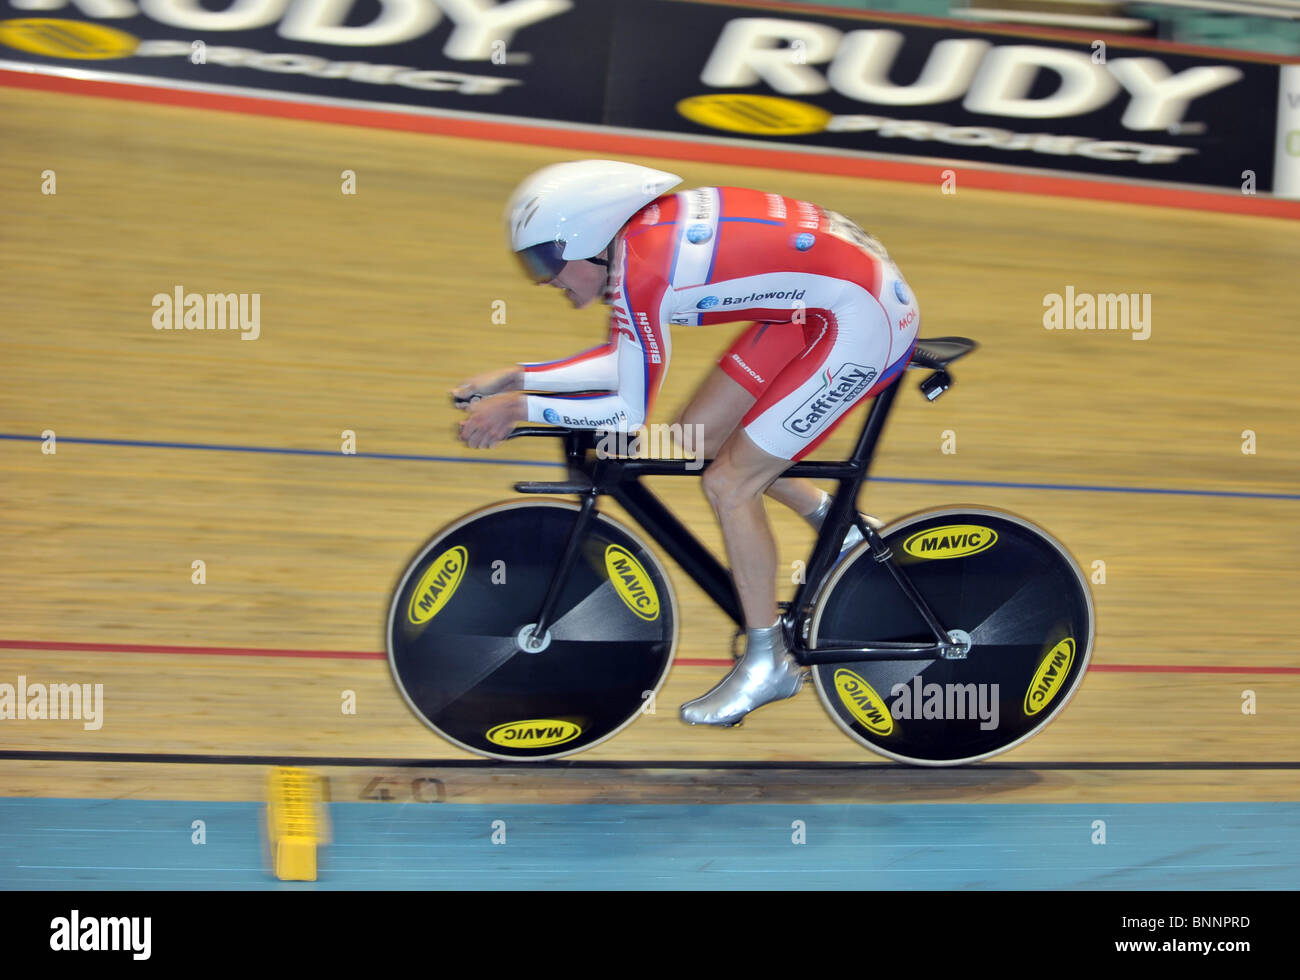 Geraint Thomas (Barloworld). 4km Pursuit Qualifiers. Thursday Afternoon Session. British Cycling Senior National - Stock Image